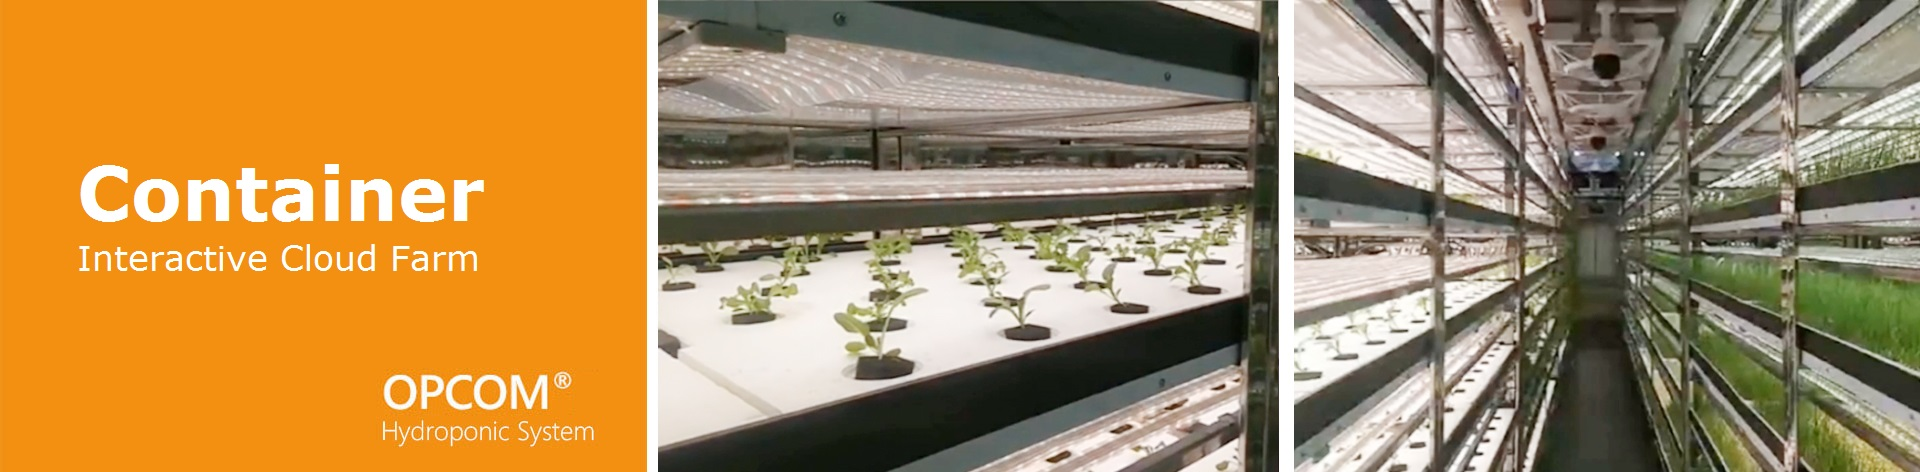 Application for Mass Production-Interactive Cloud Farm, Hydroponic System